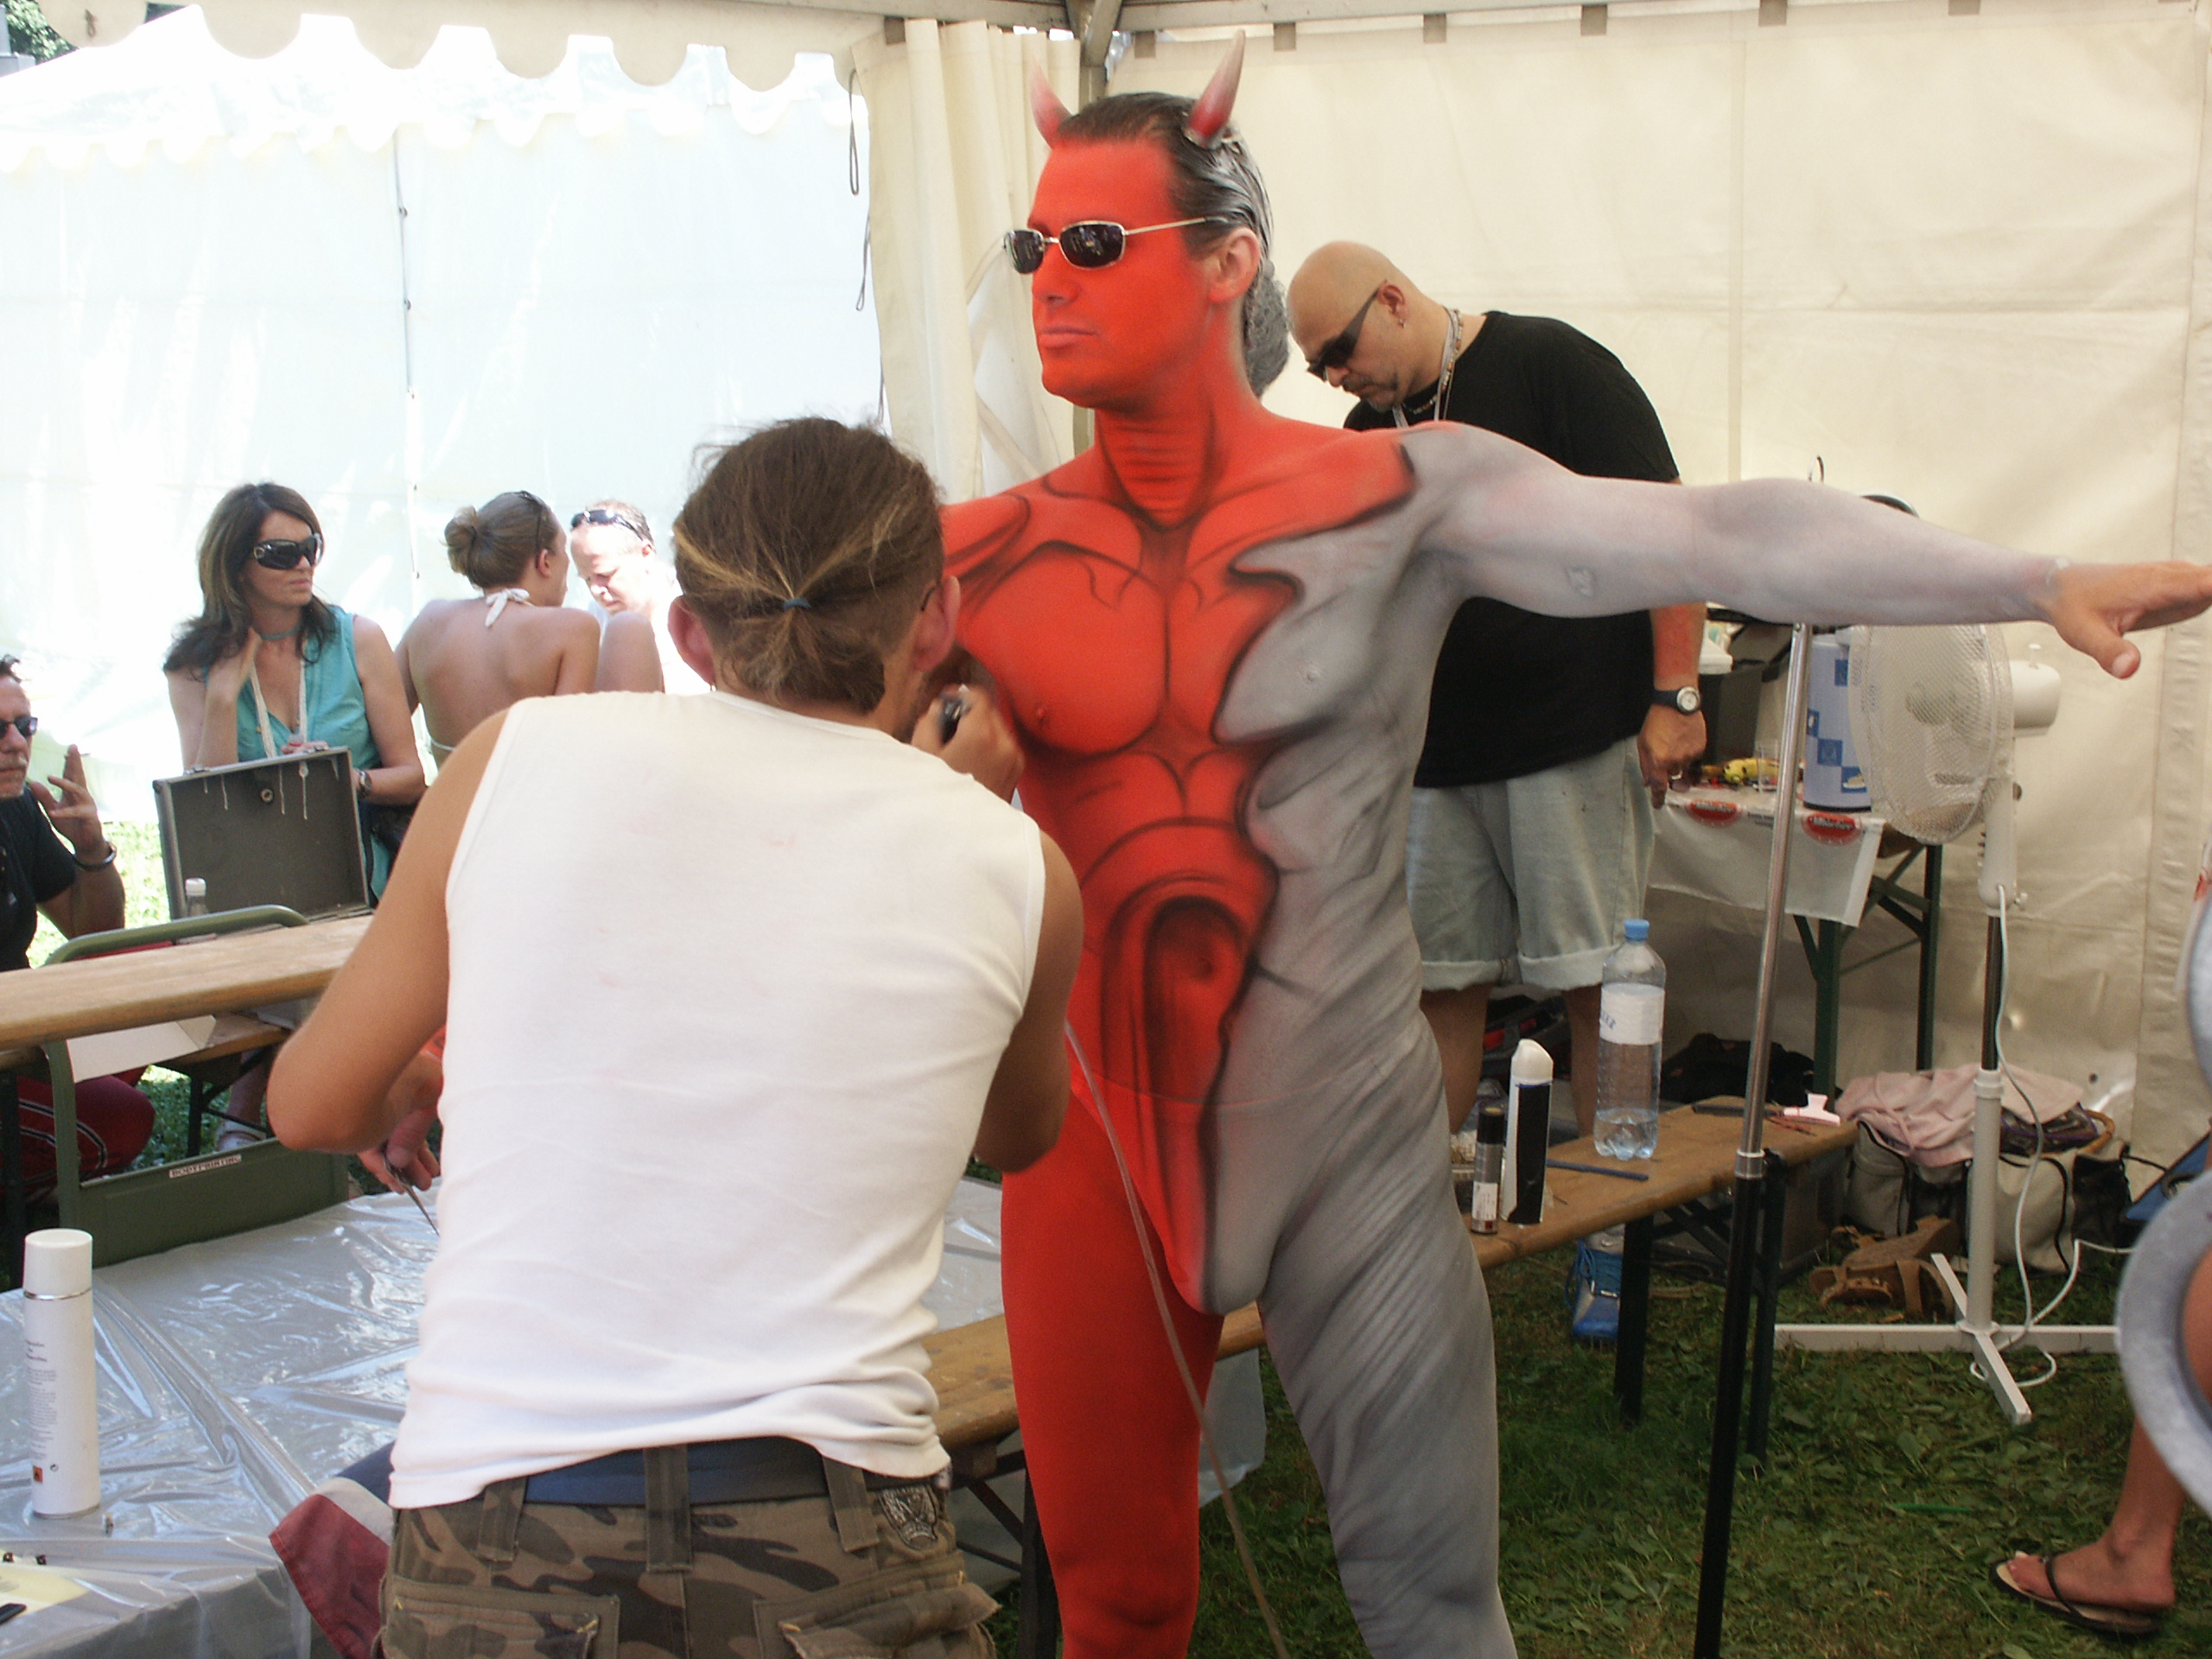 Remarkable, Male body painting not